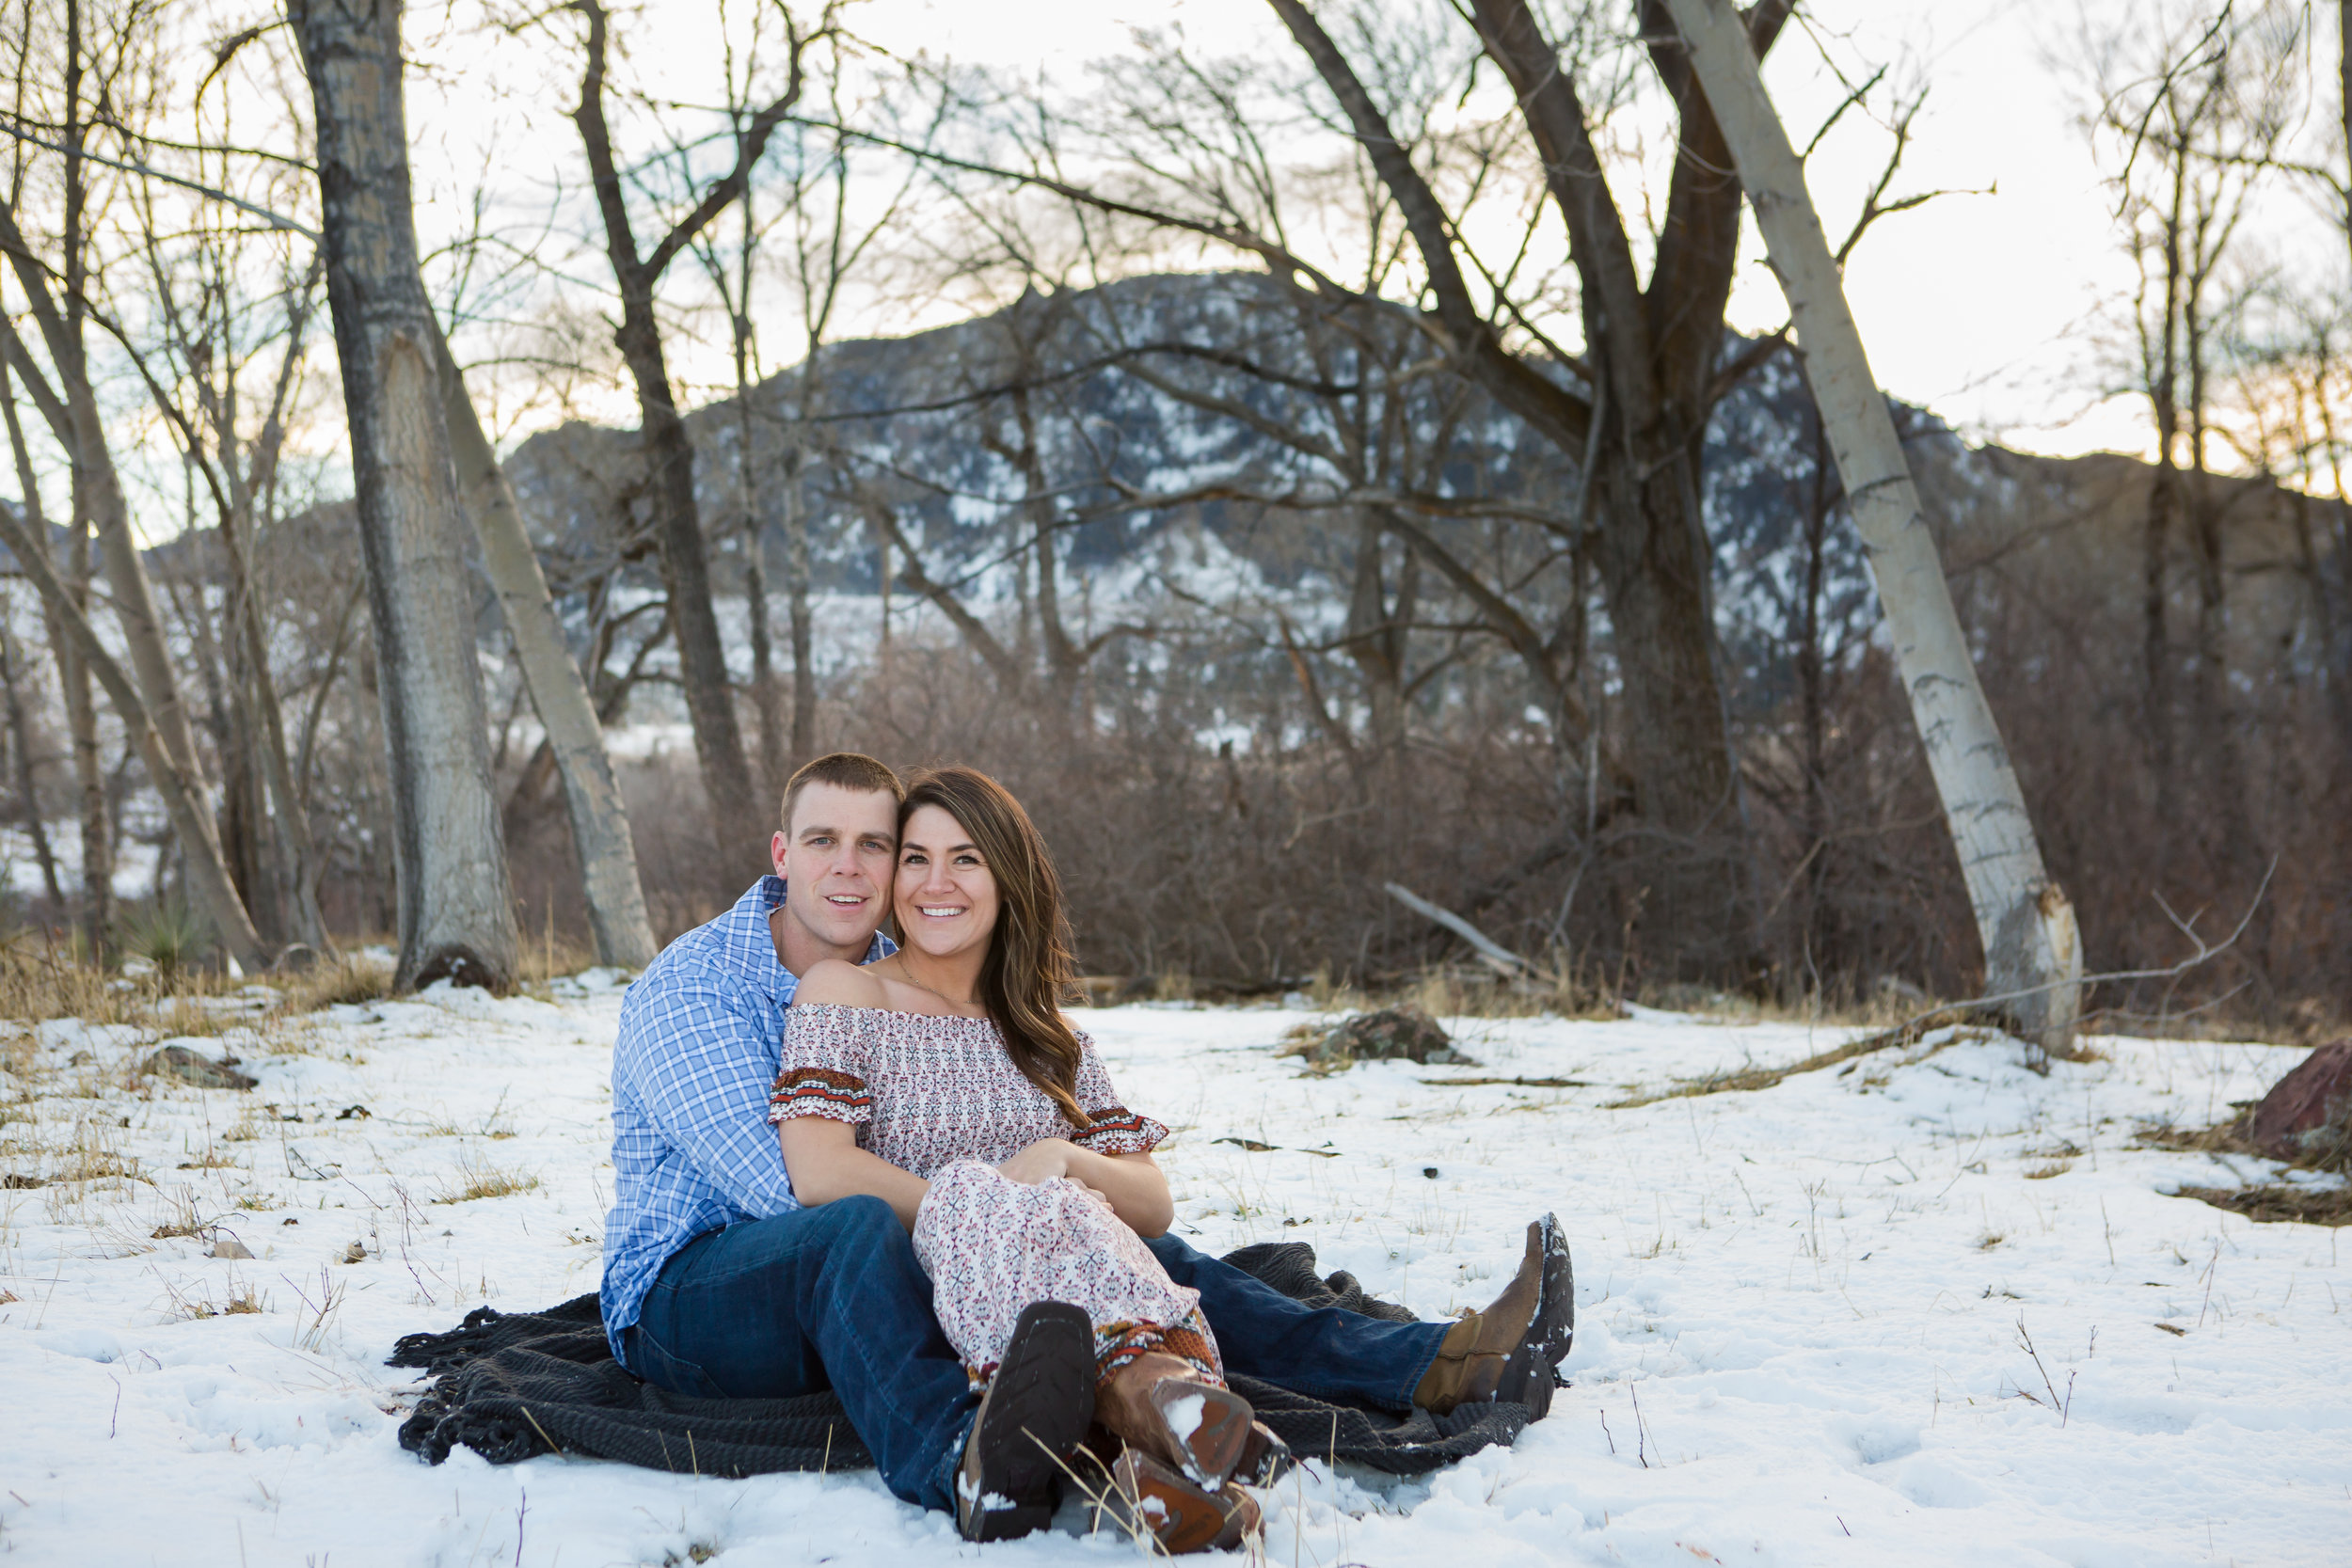 Nick&JessEngagement-67.jpg